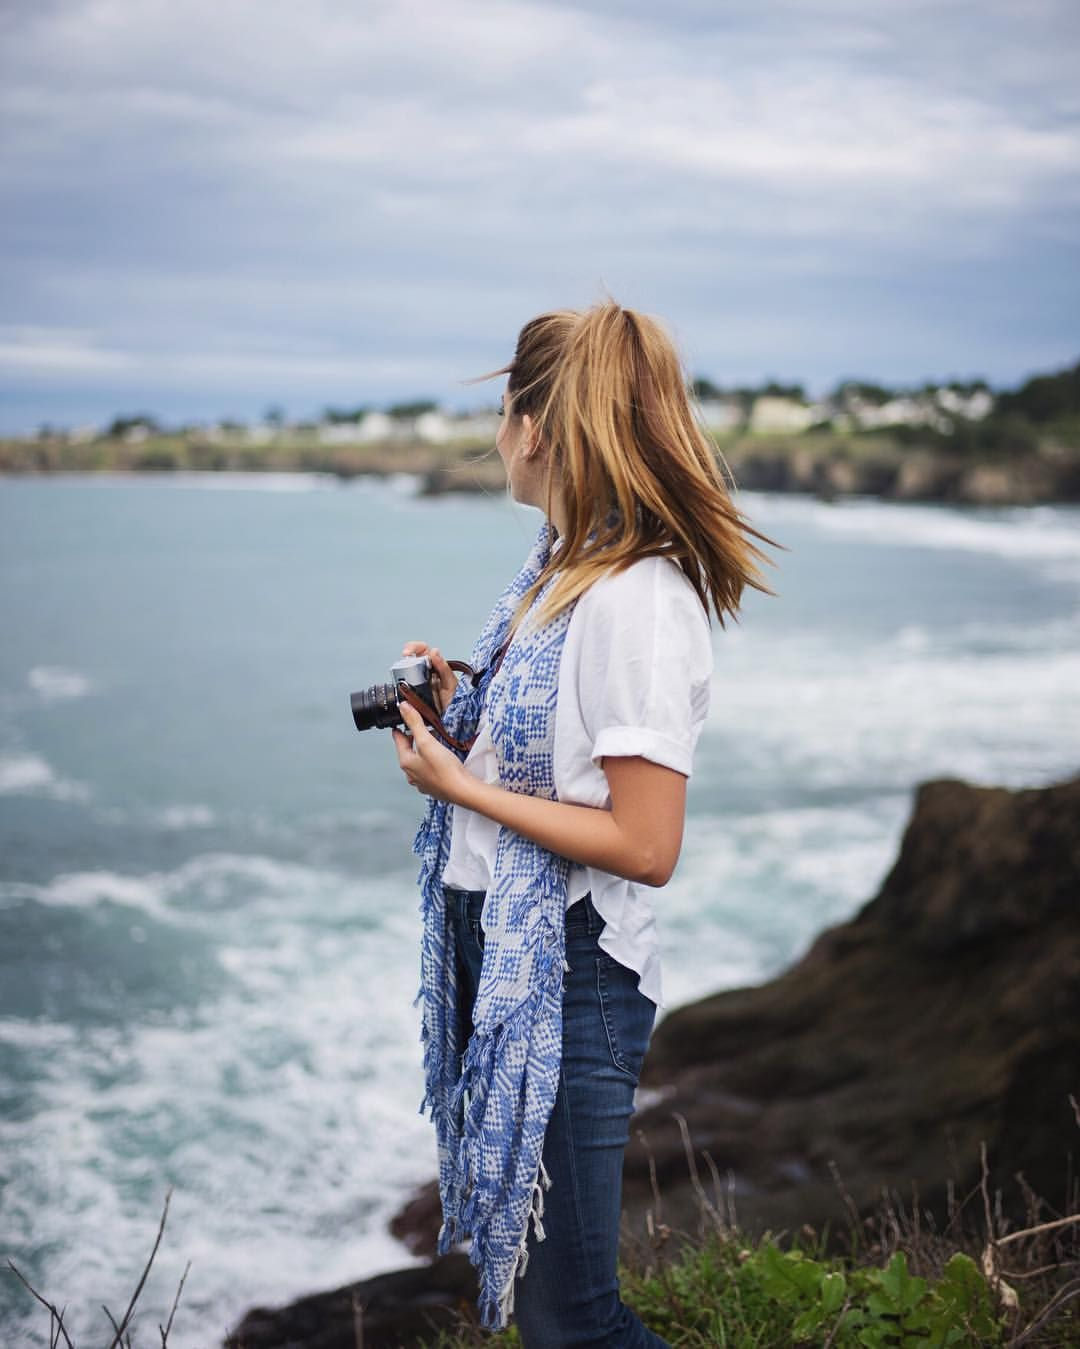 """Julia Engel (Gal Meets Glam) on Instagram: """"Wearing my favorite pair of @gap Denim while on a road trip with @cntraveler to Mendocino County a few weeks ago. Mendocino has some of the most stunning views of the Northern California Coast and lush landscapes, it's full of hidden gems. #styldby #nothingbutdenim"""""""